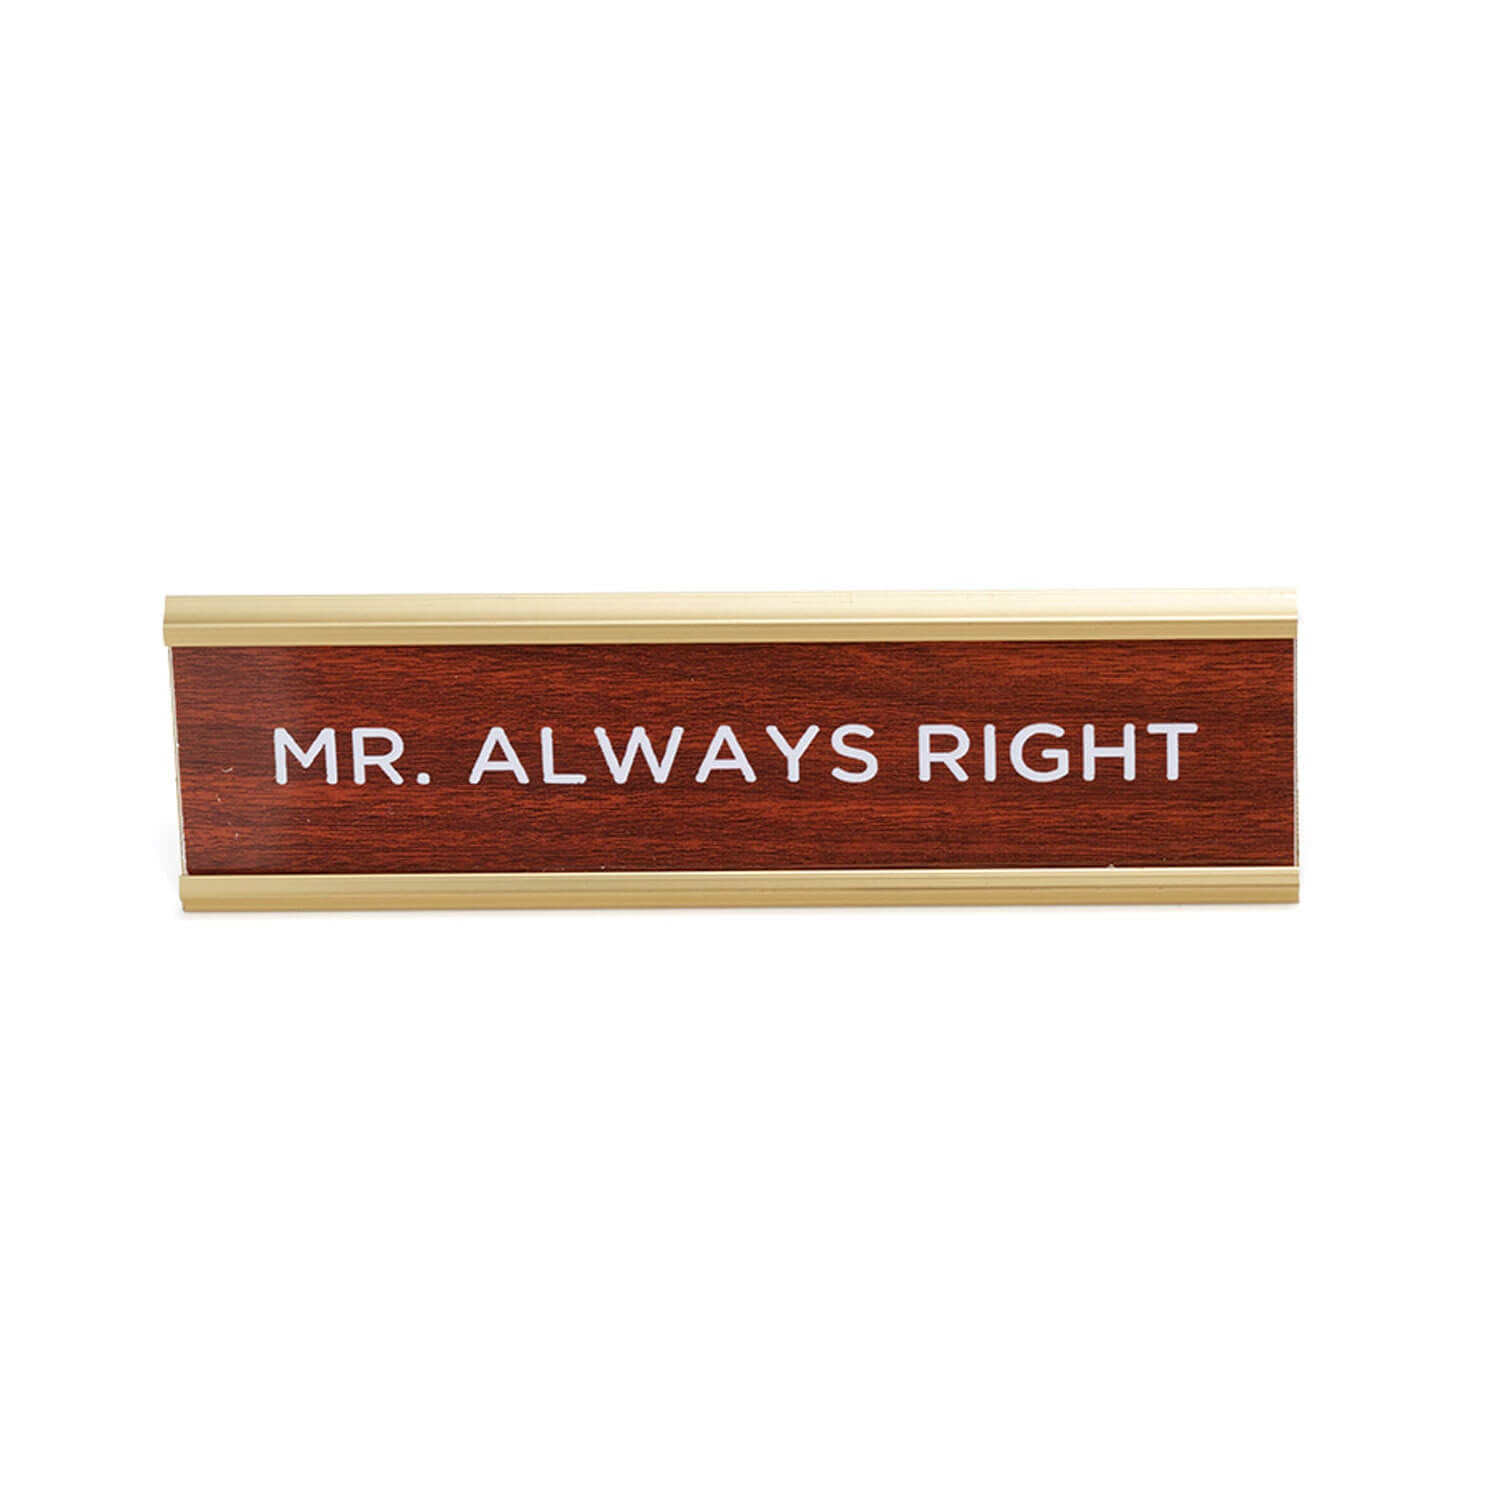 Wood Desk Name Plate - MR. ALWAYS RIGHT